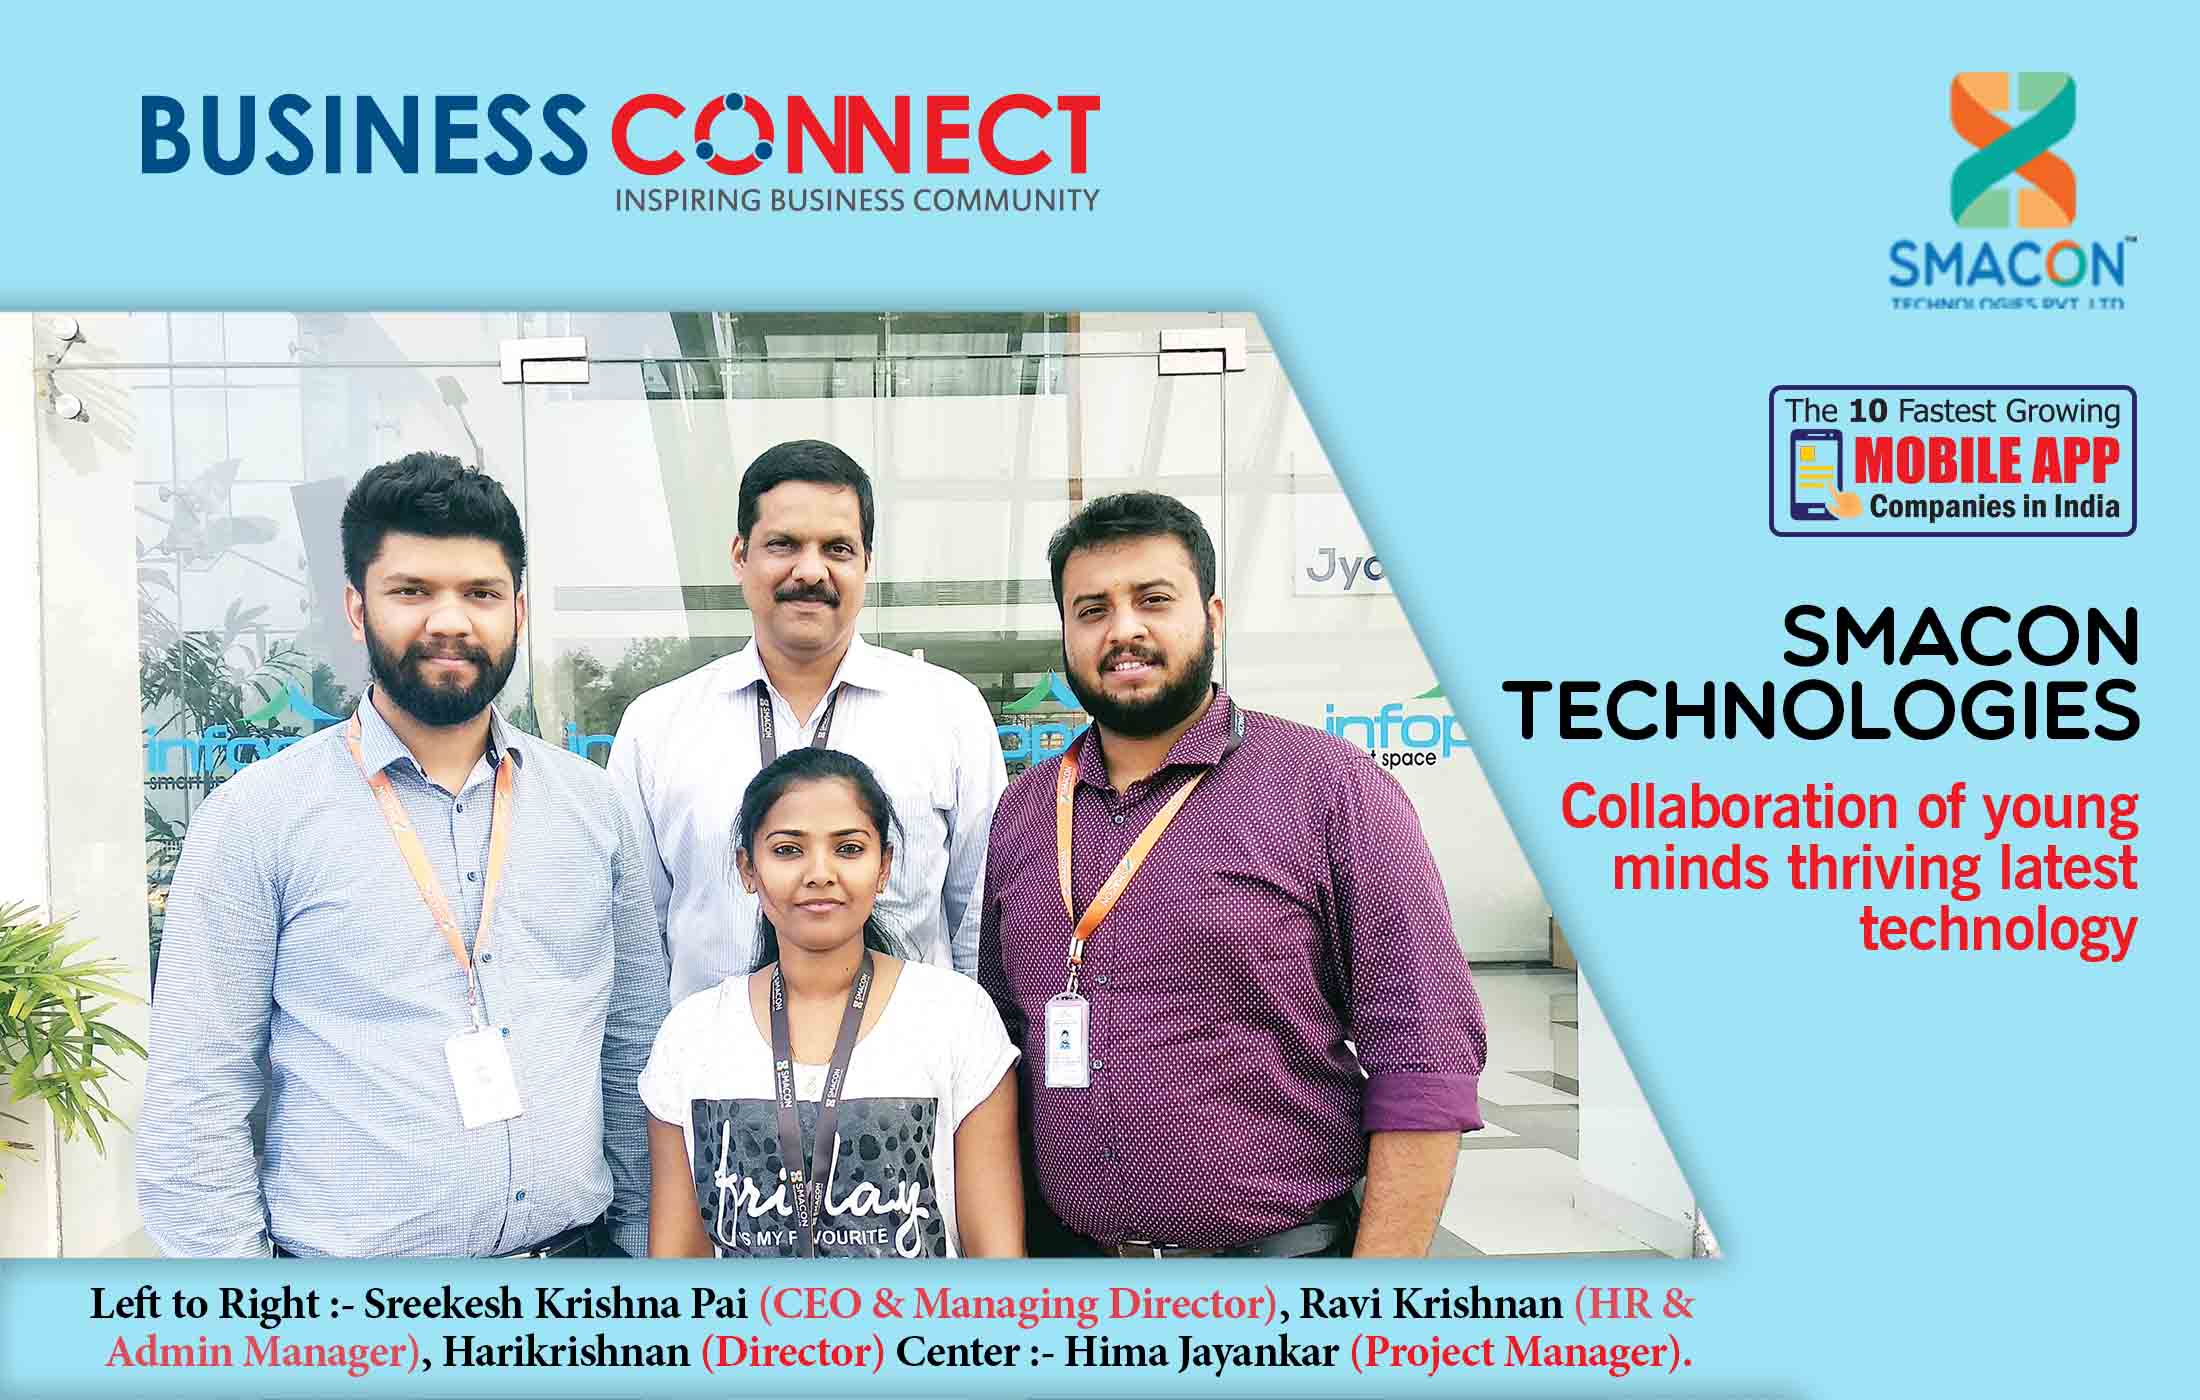 SMACON Technologies - Business Connect